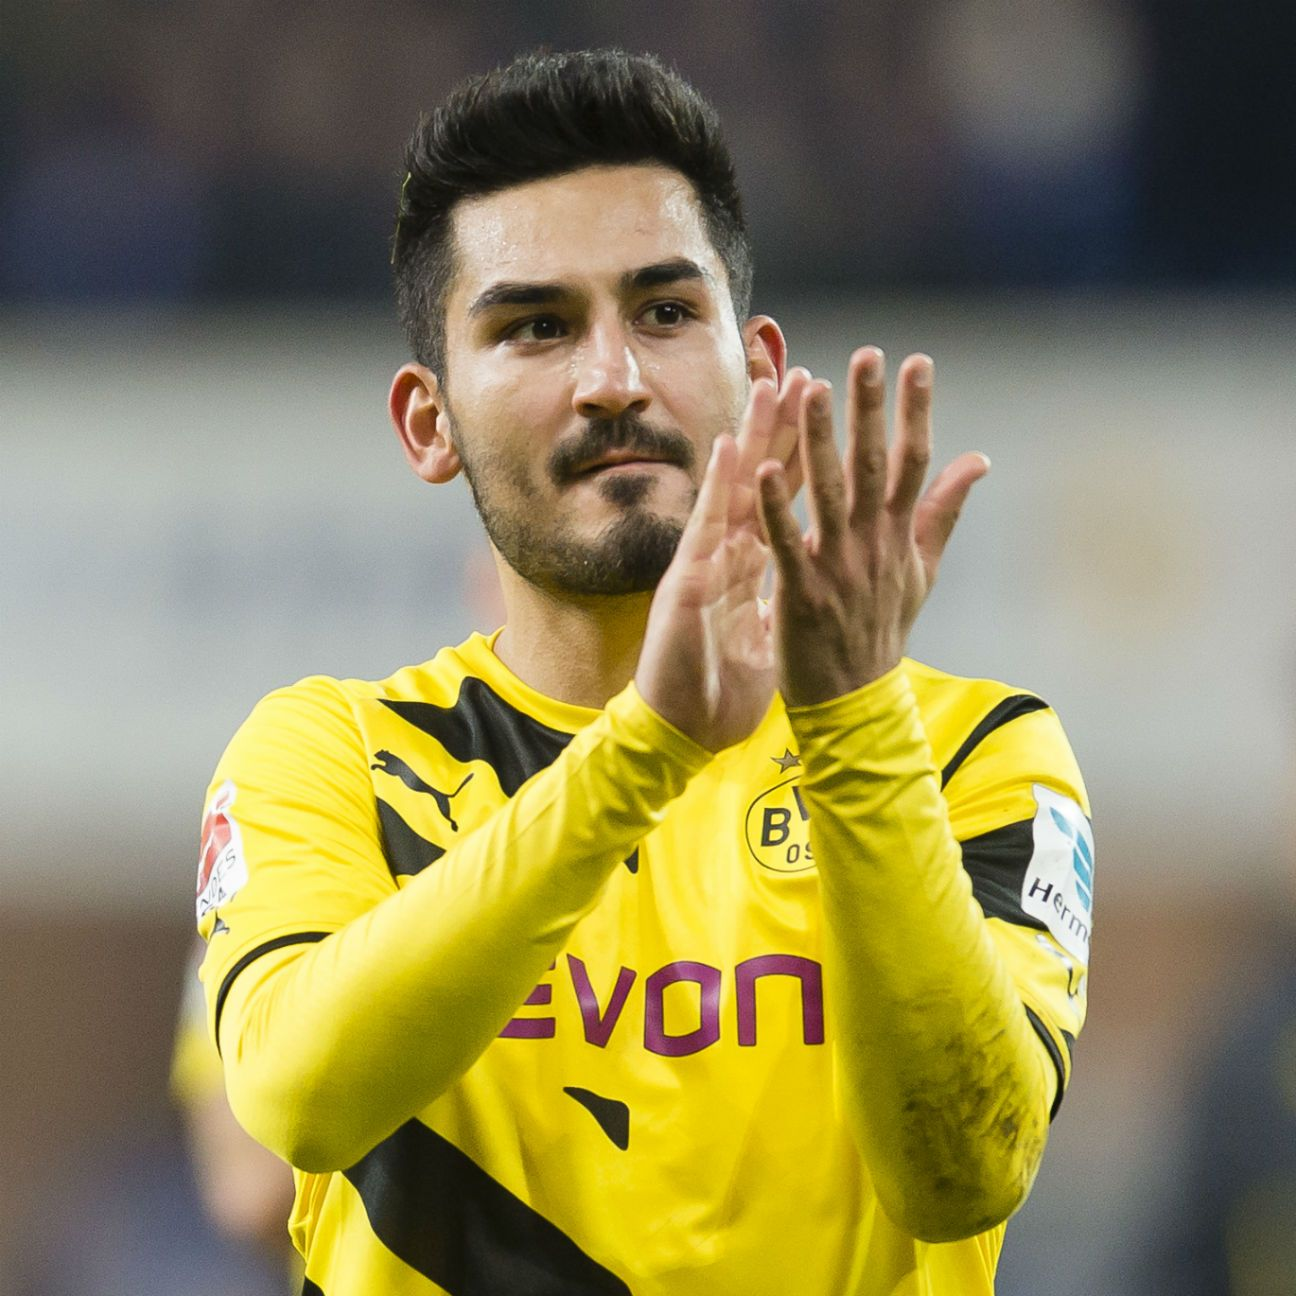 Ilkay Gundogan appeared in 22 Bundesliga matches for Borussia Dortmund in 2014-15.